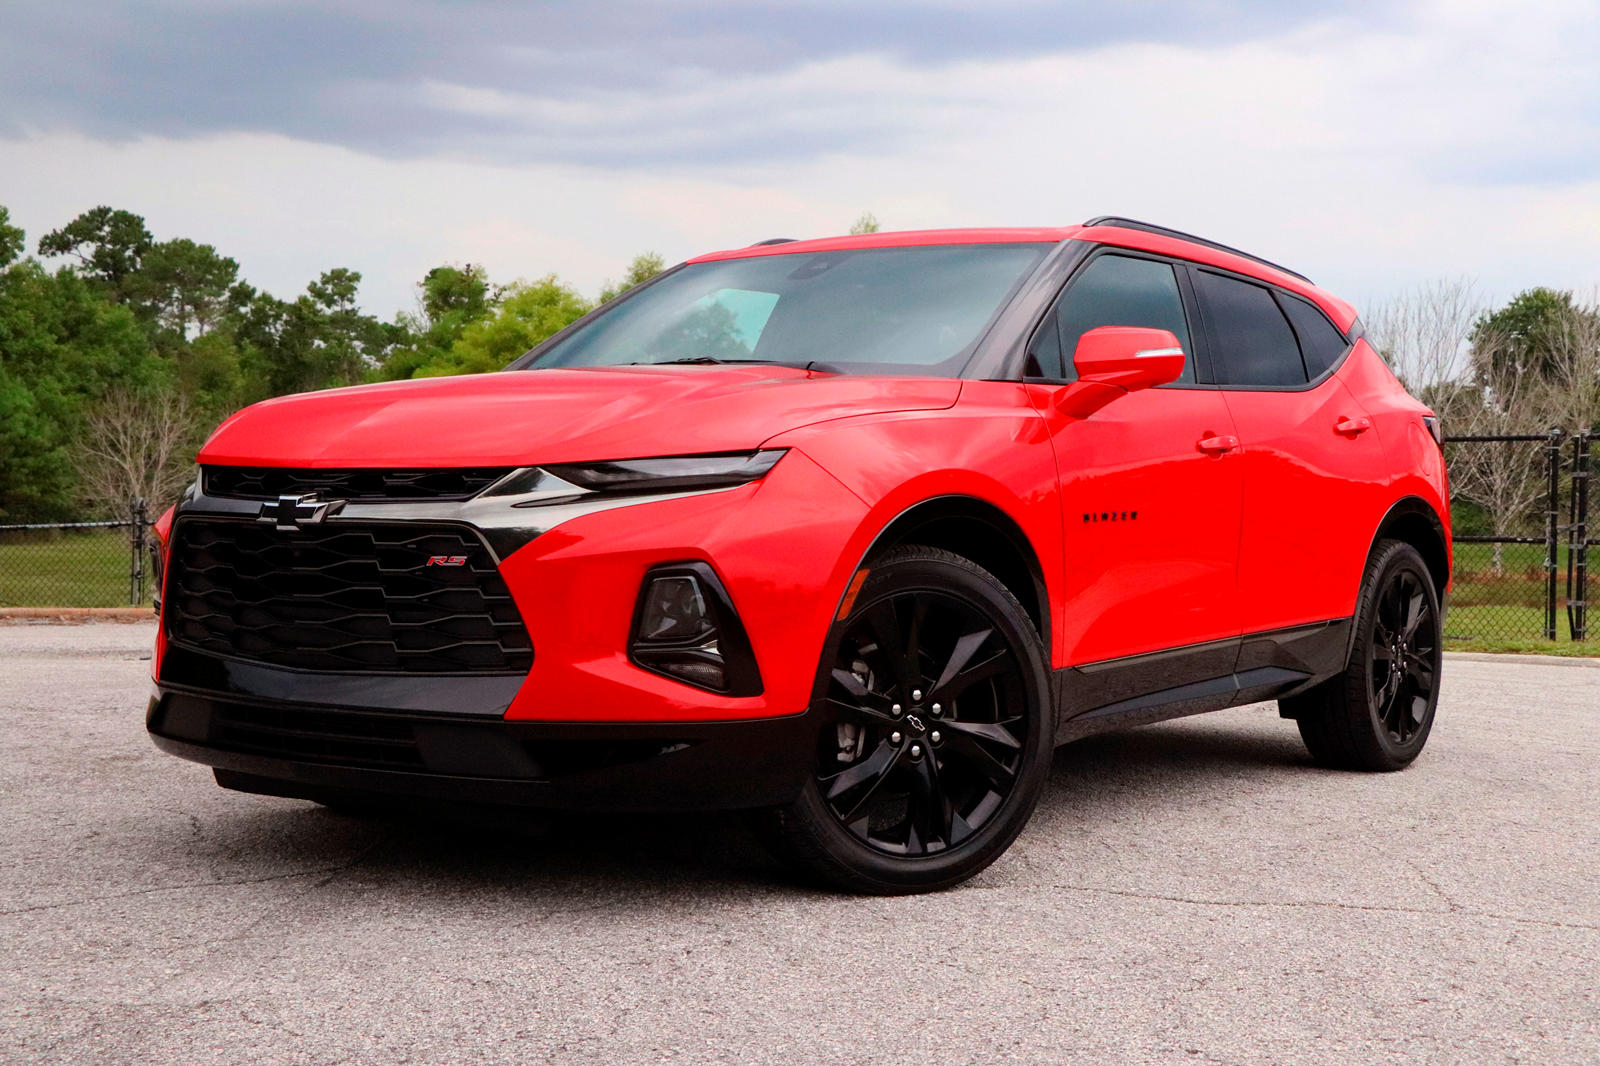 2021 Chevrolet Blazer New Chevy Blazer Suv Models Reviews Price Specs Trims New Interior Features Exterior Design And Specifications Carbuzz